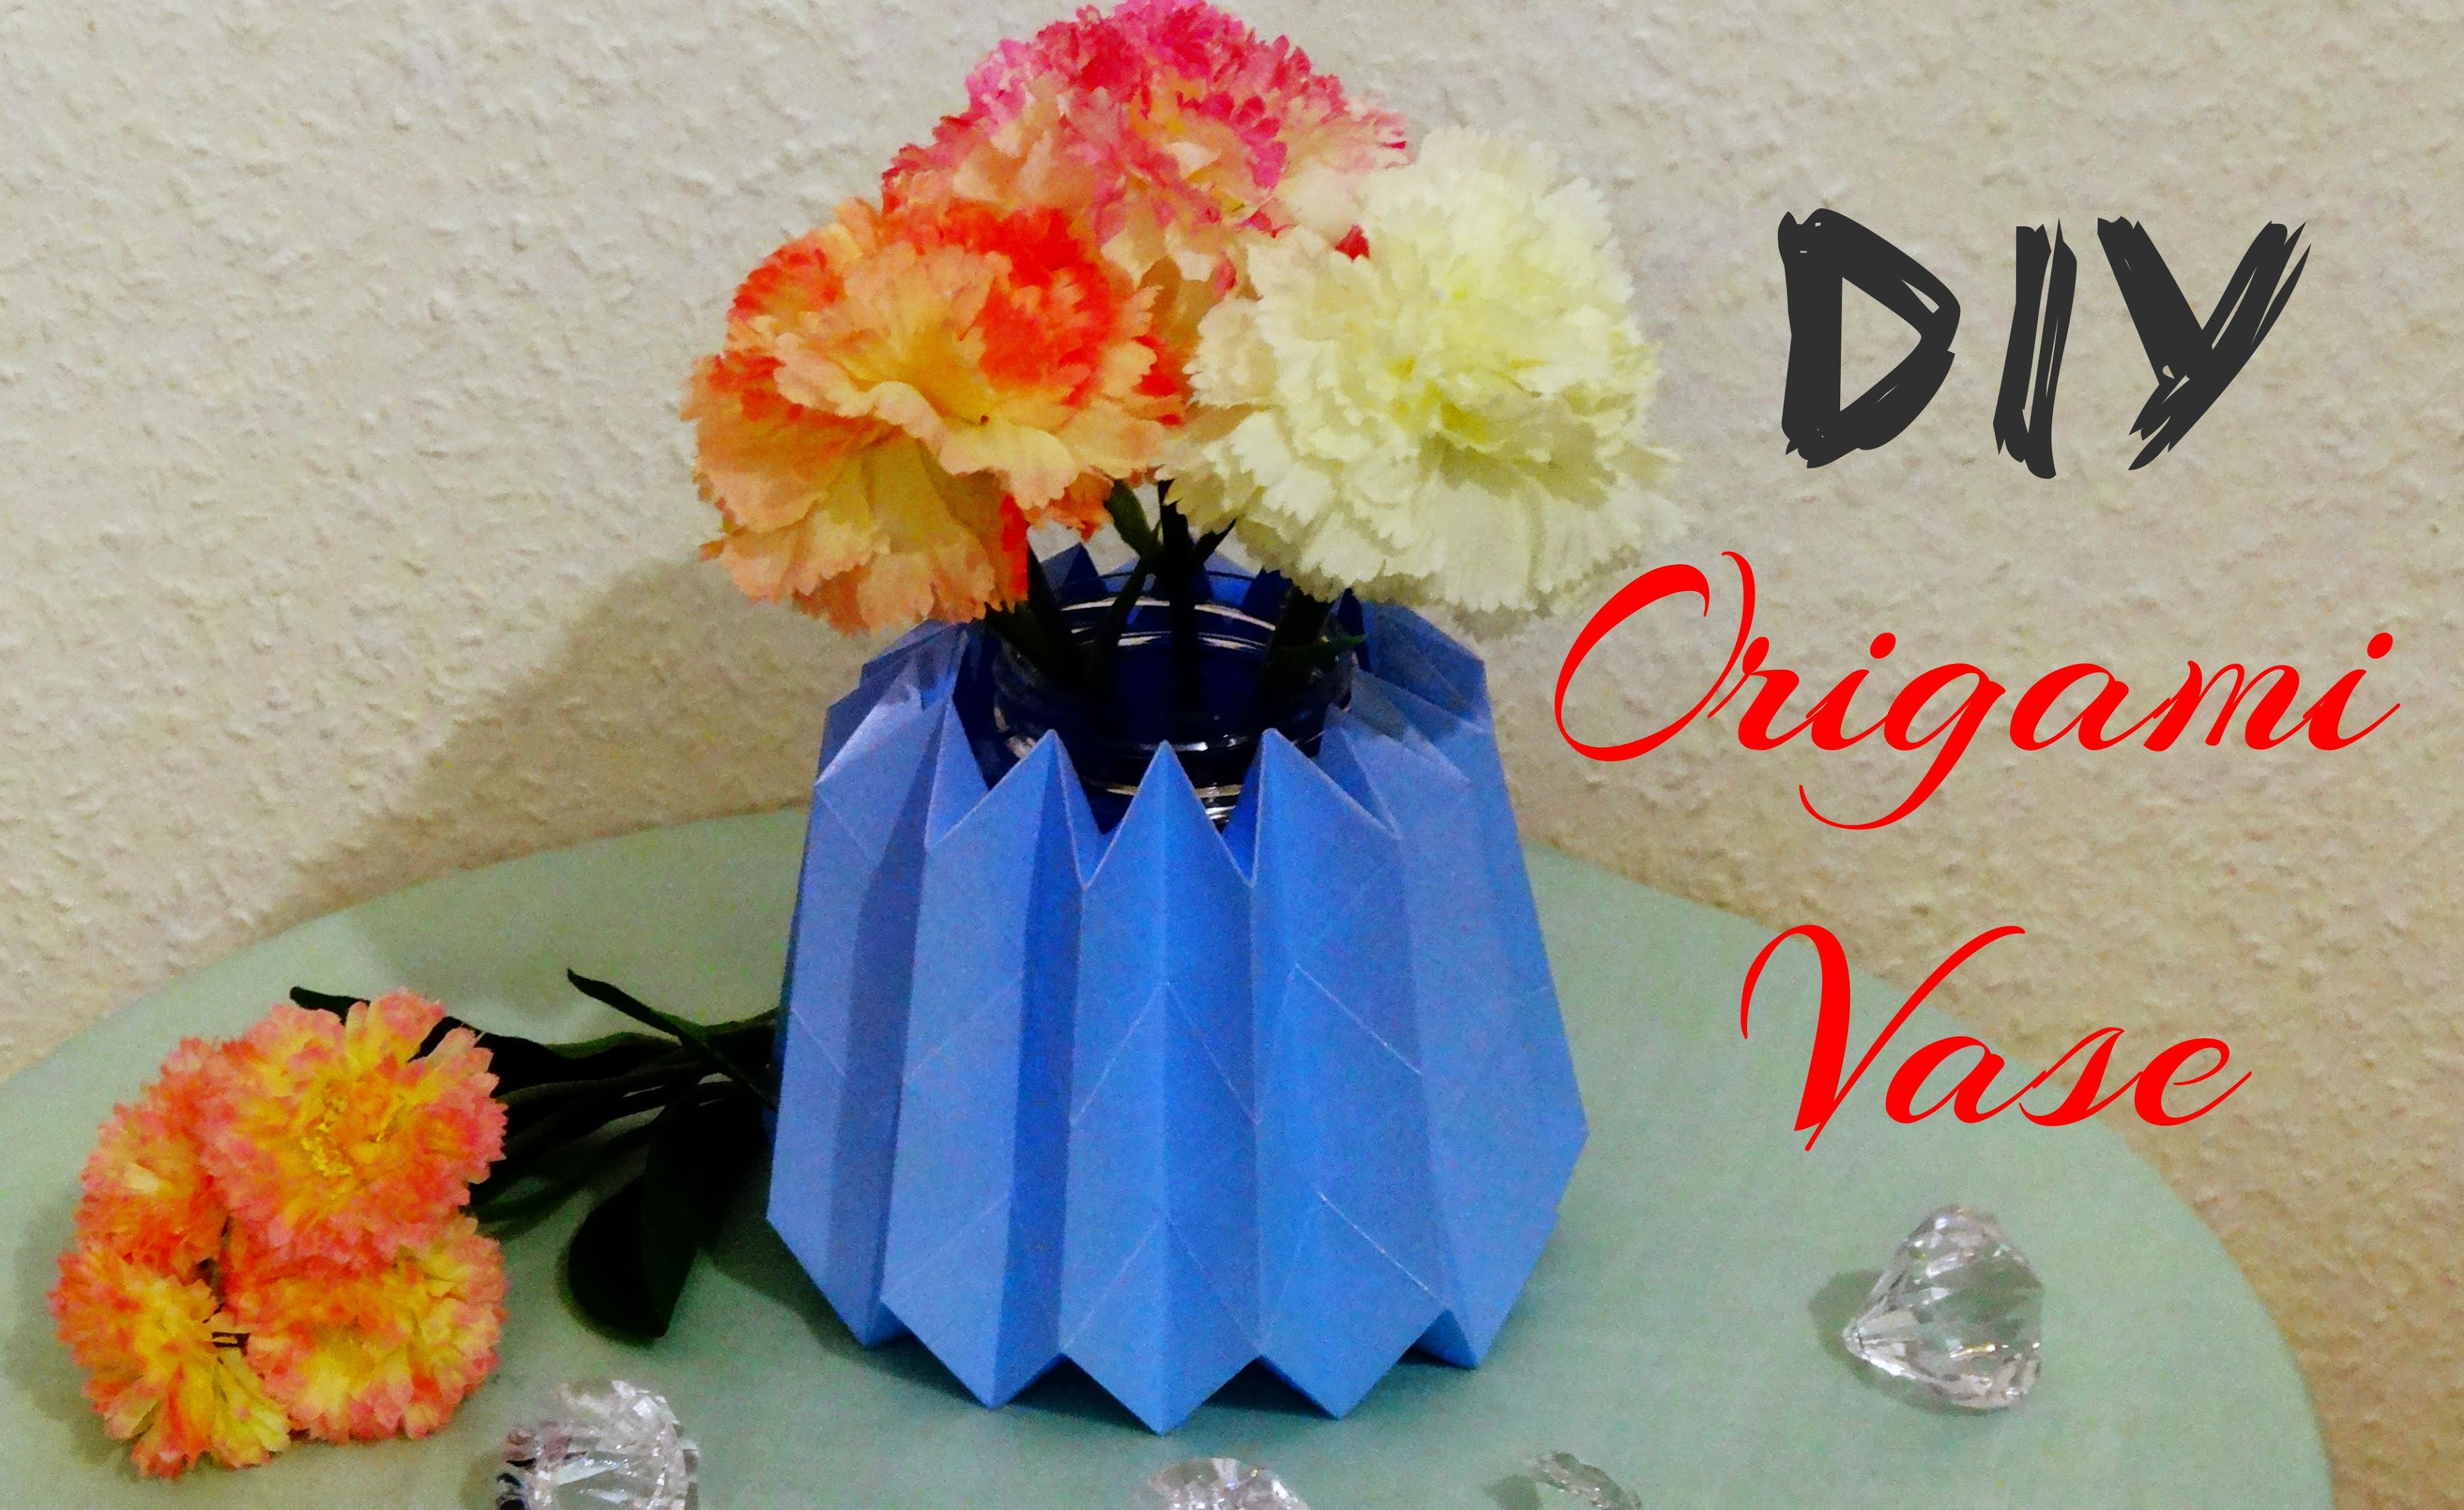 diy origami vase tutorial. Black Bedroom Furniture Sets. Home Design Ideas